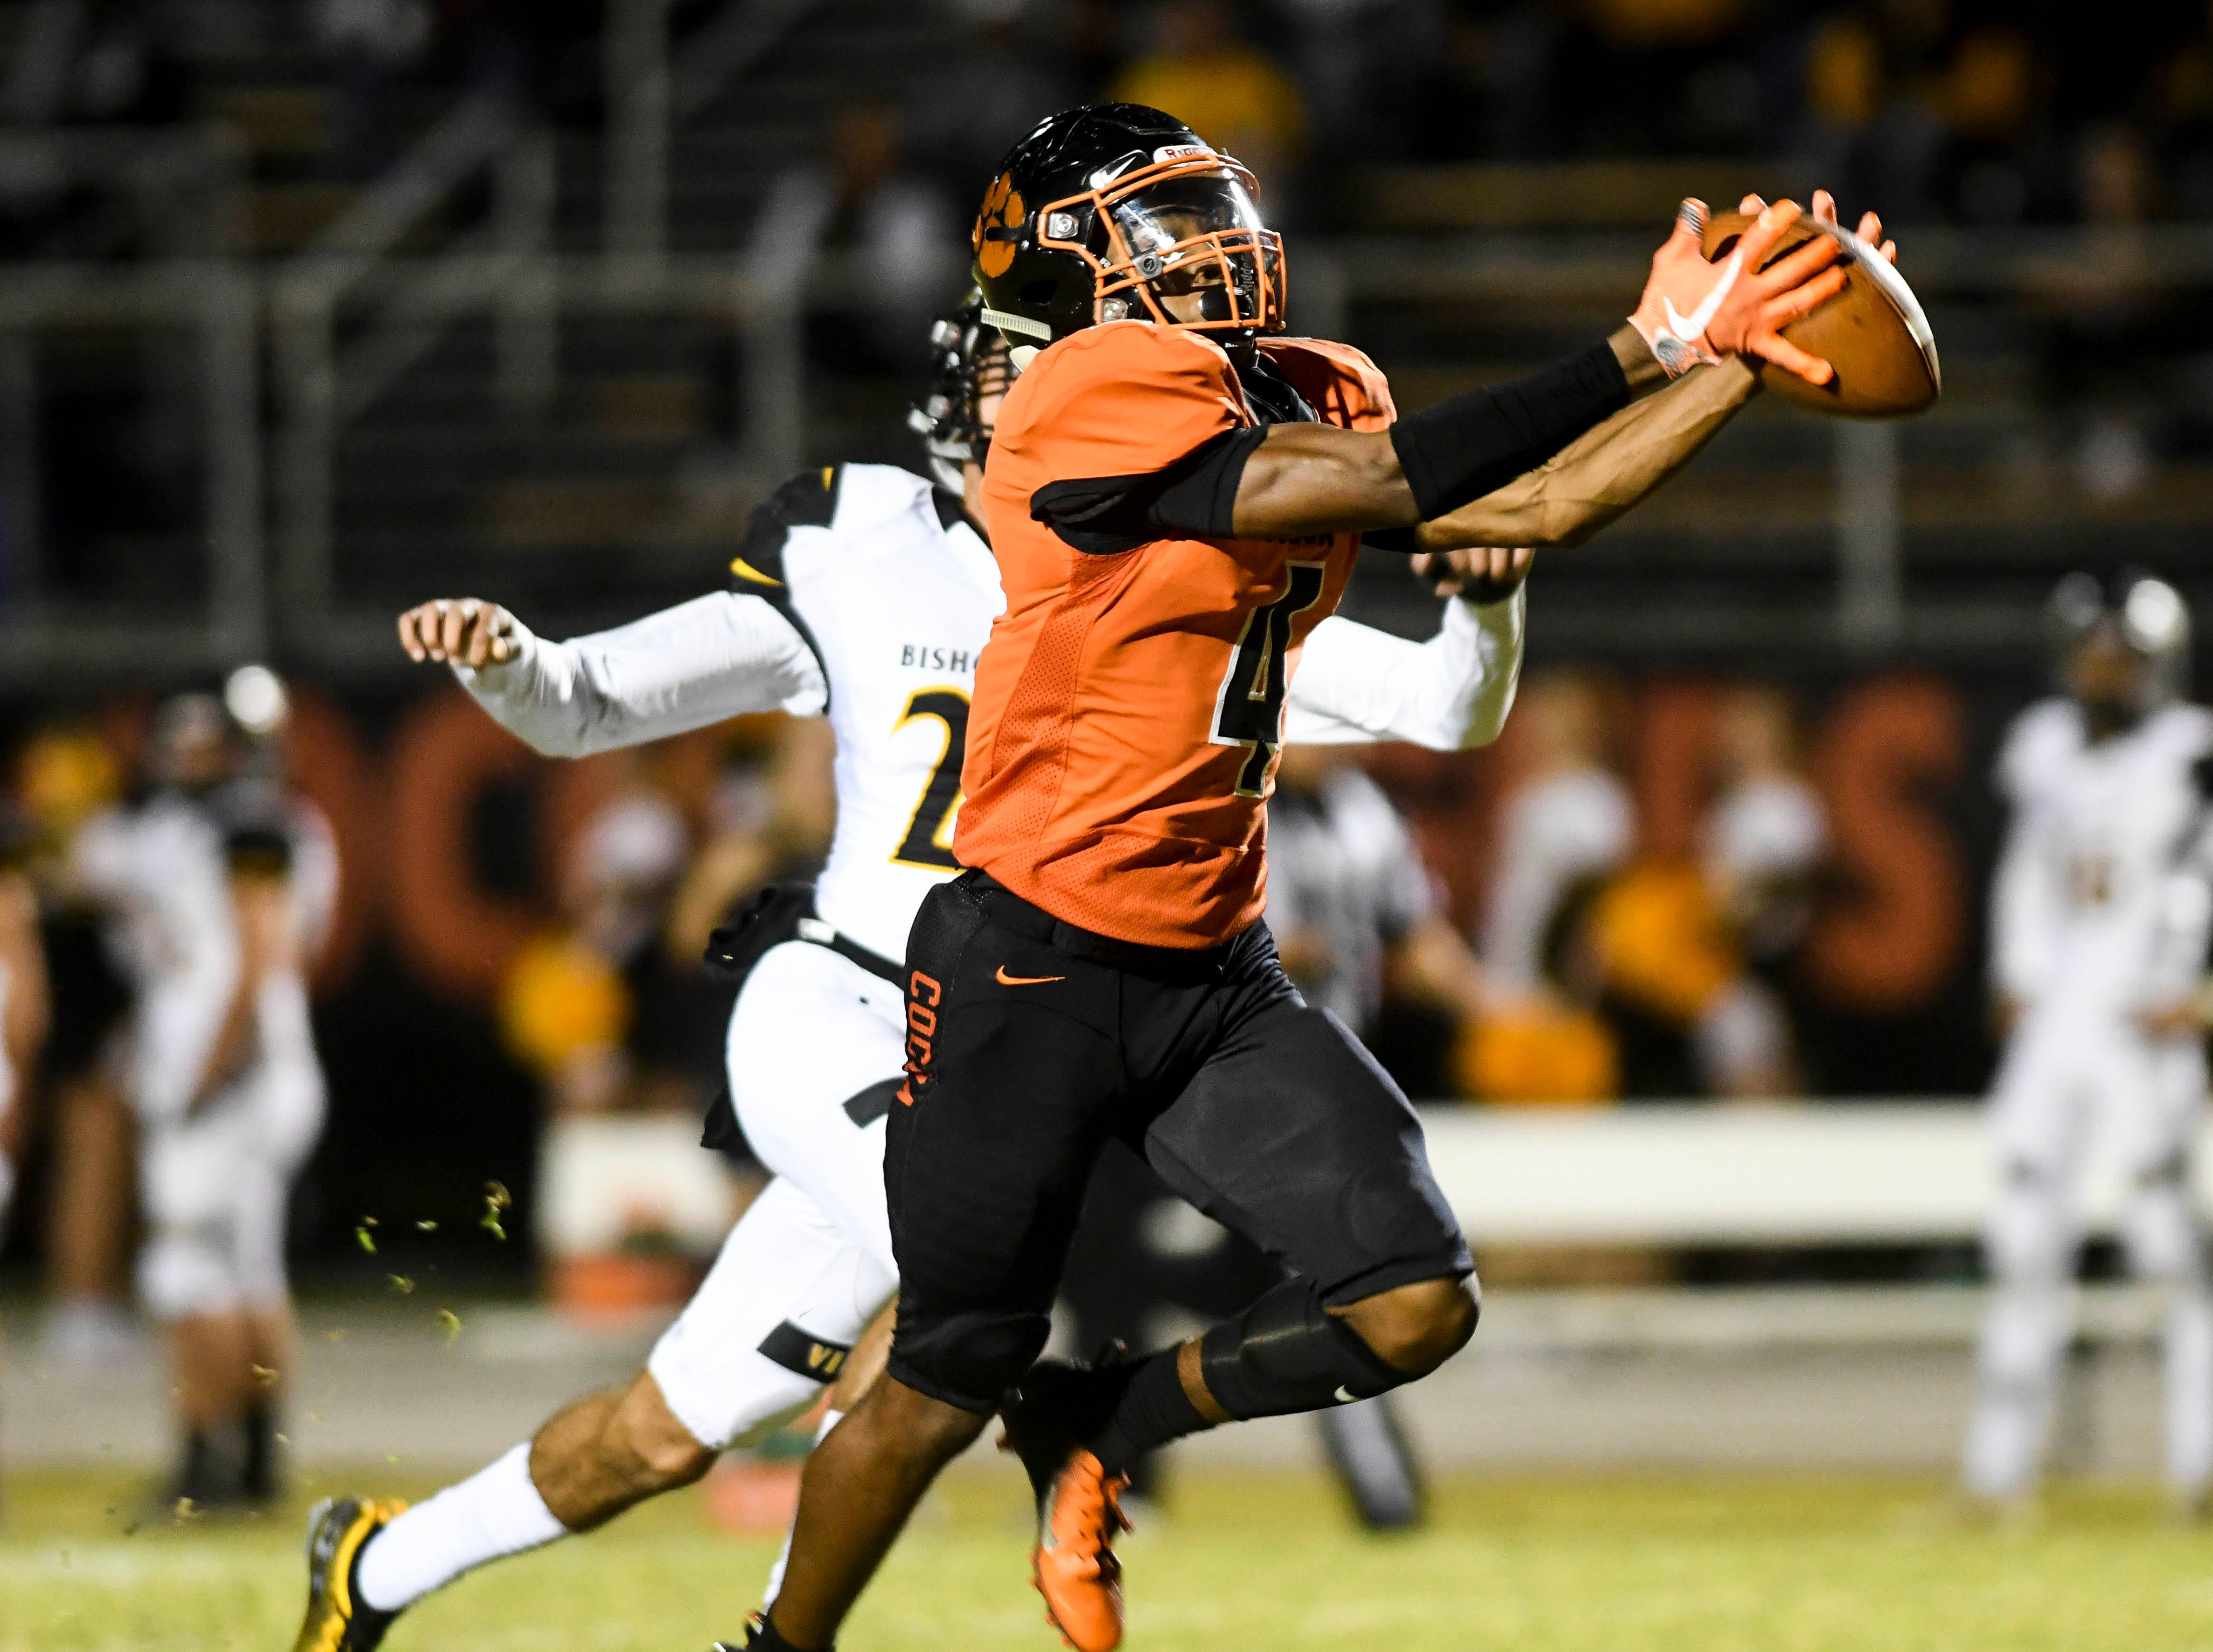 WIllie Gaines of Cocoa catches a TD pass in front of Lucas Tejera of Bishop Verot during Friday's regional championship.